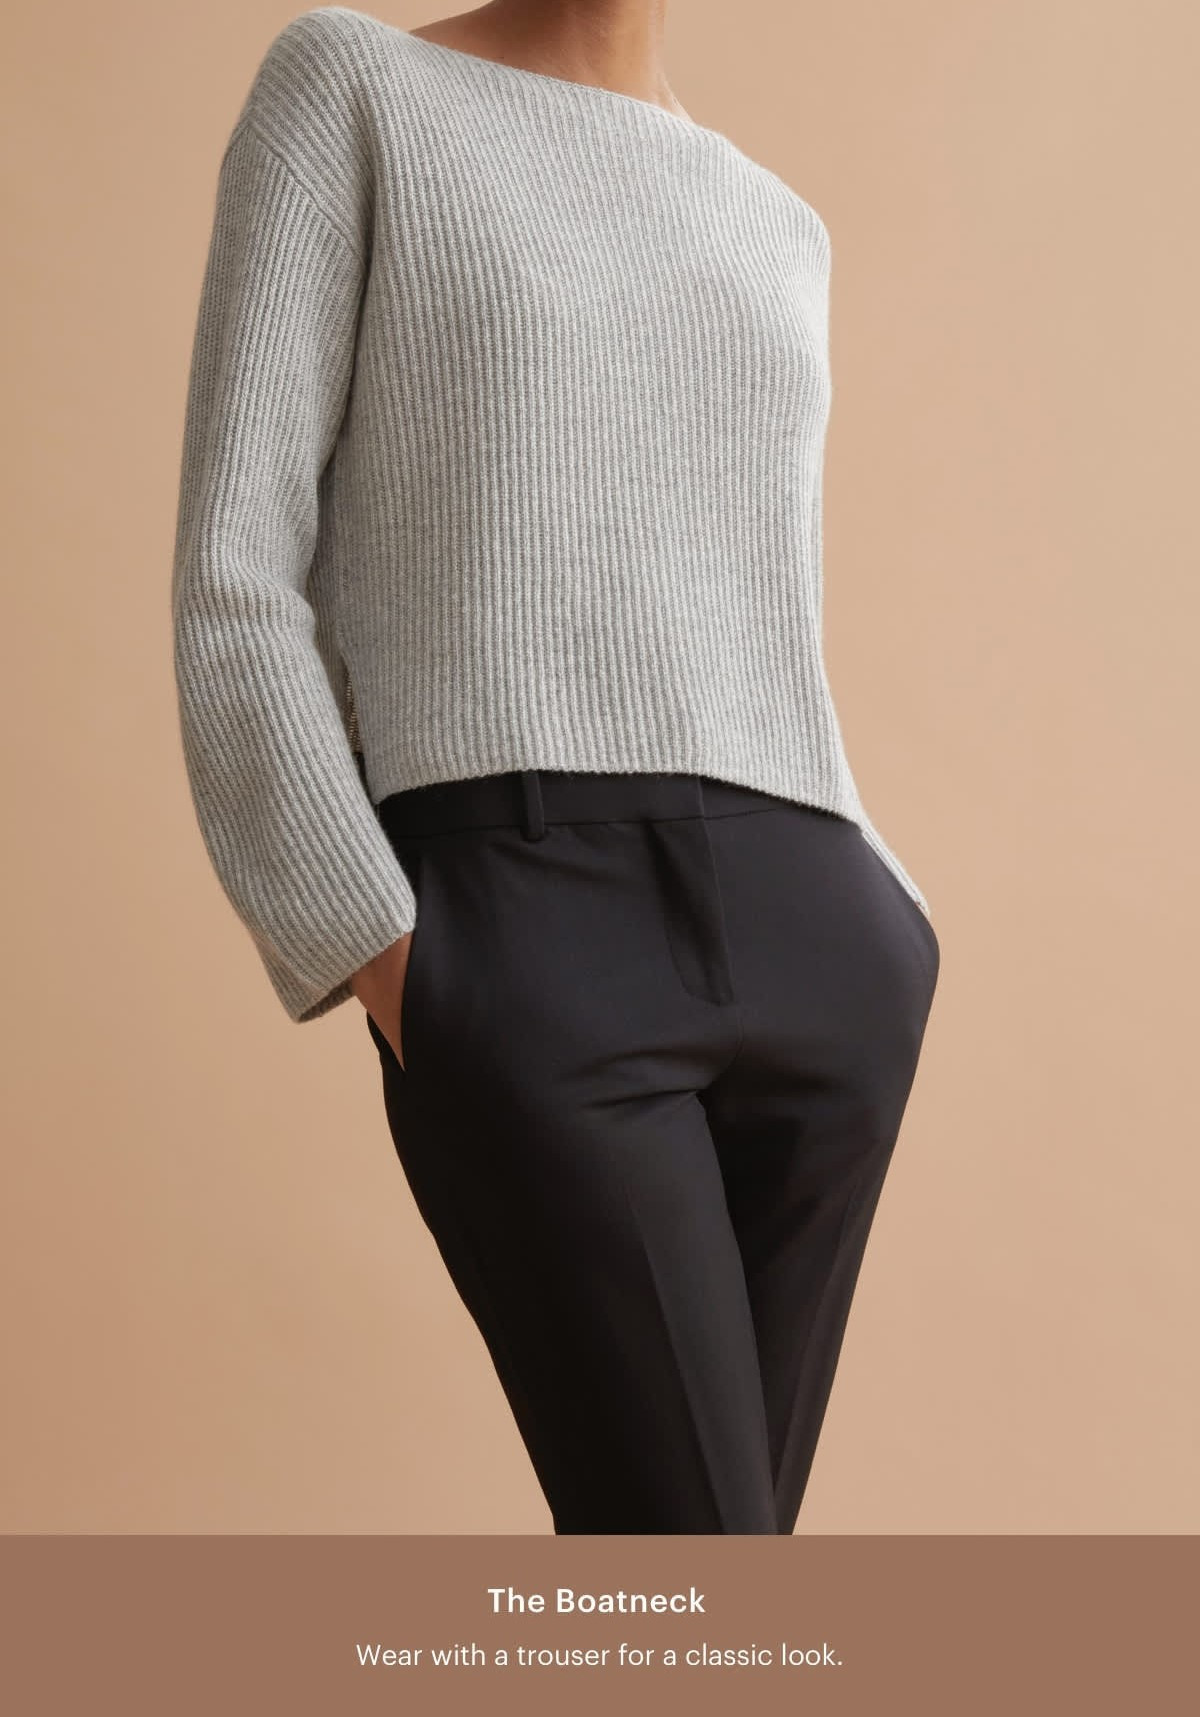 Stripo-Product-Launch-Everlane-Recommendations